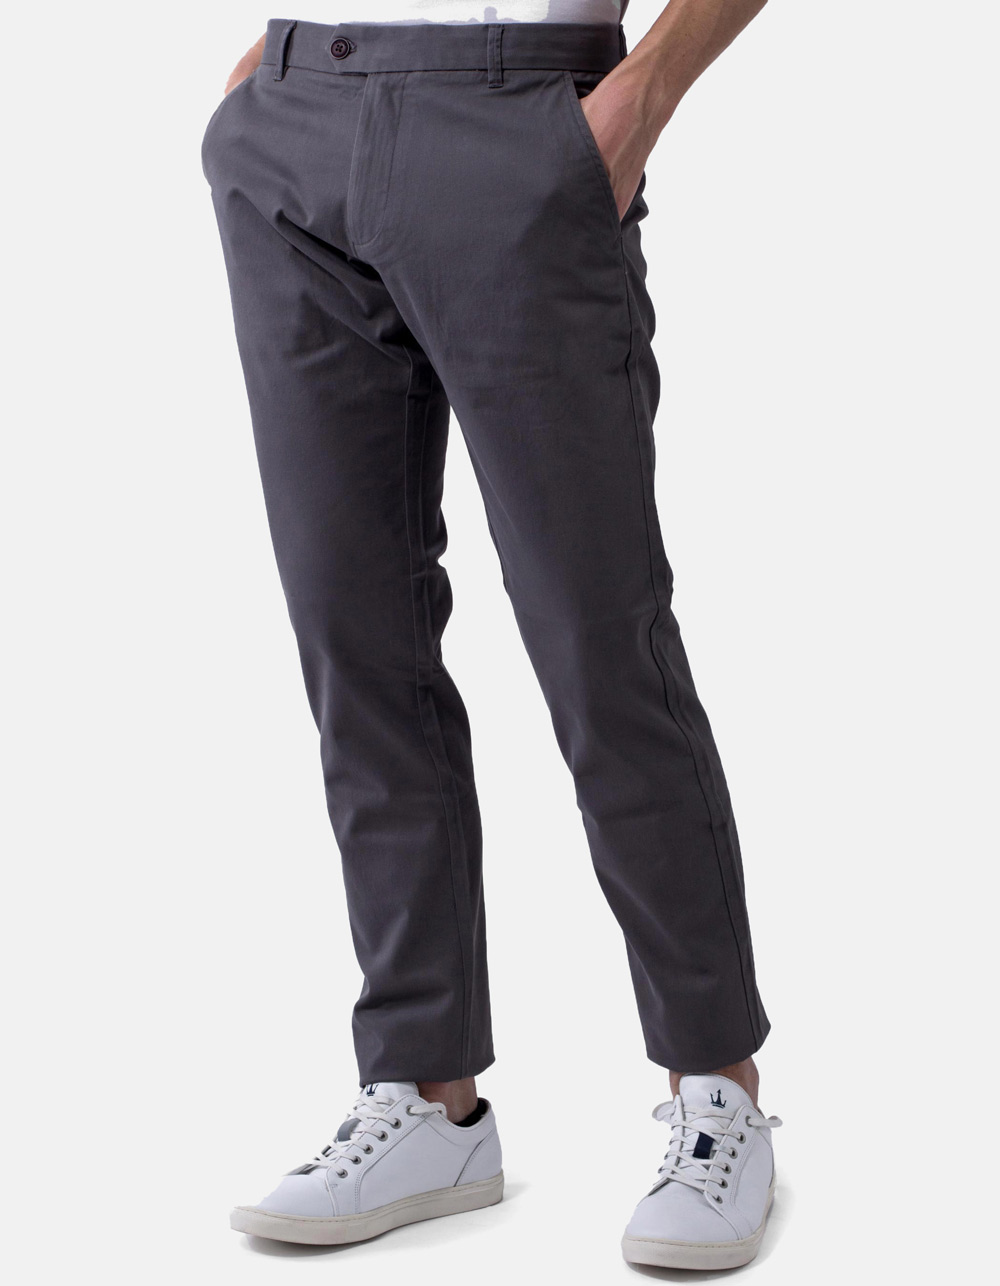 Basic chino grey trousers